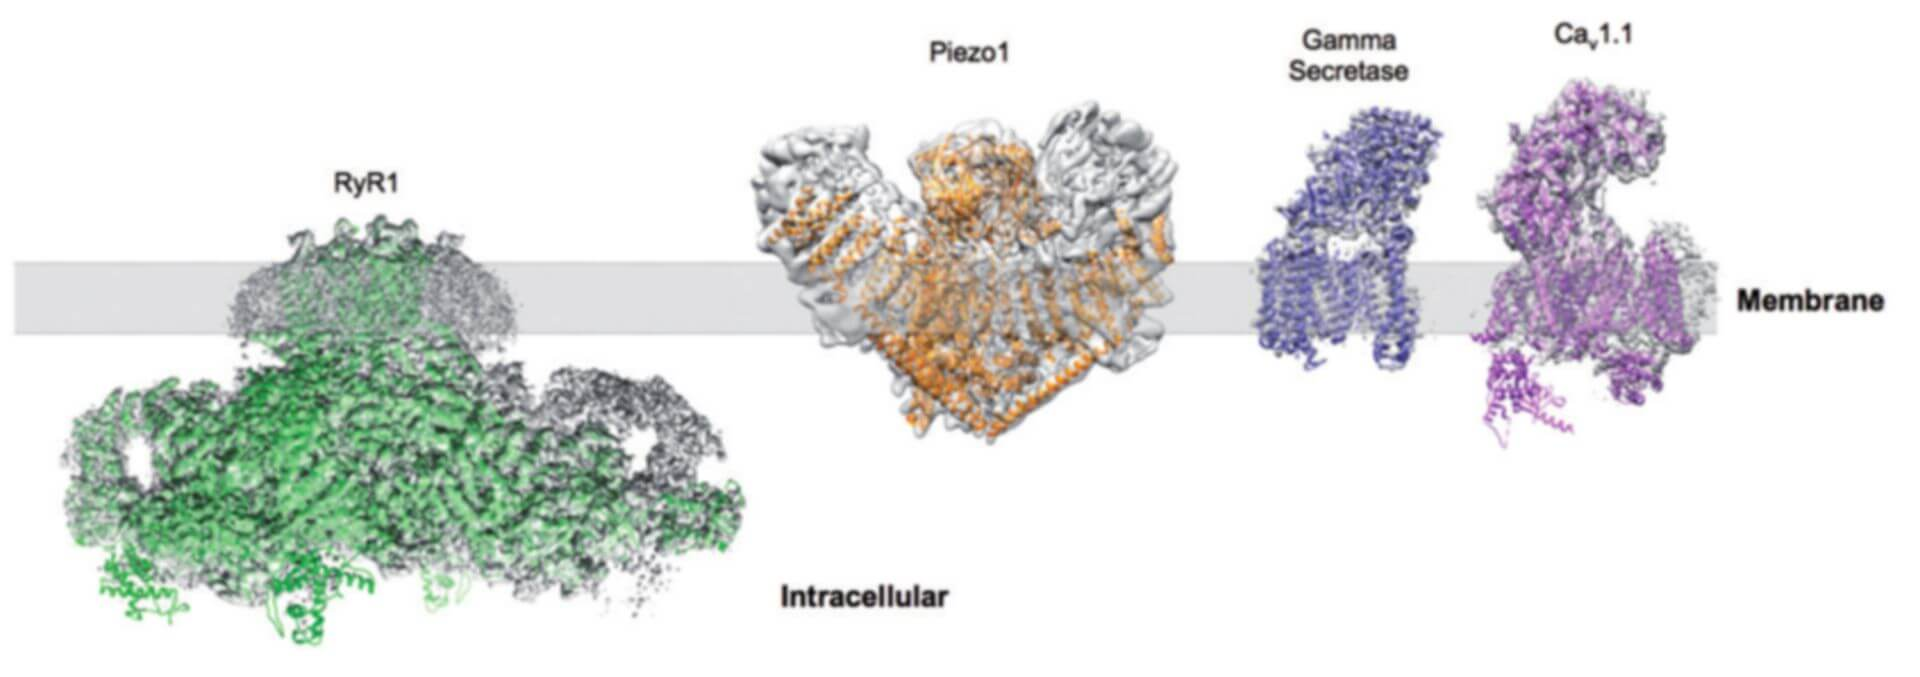 Cryo-EM for Membrane Protein